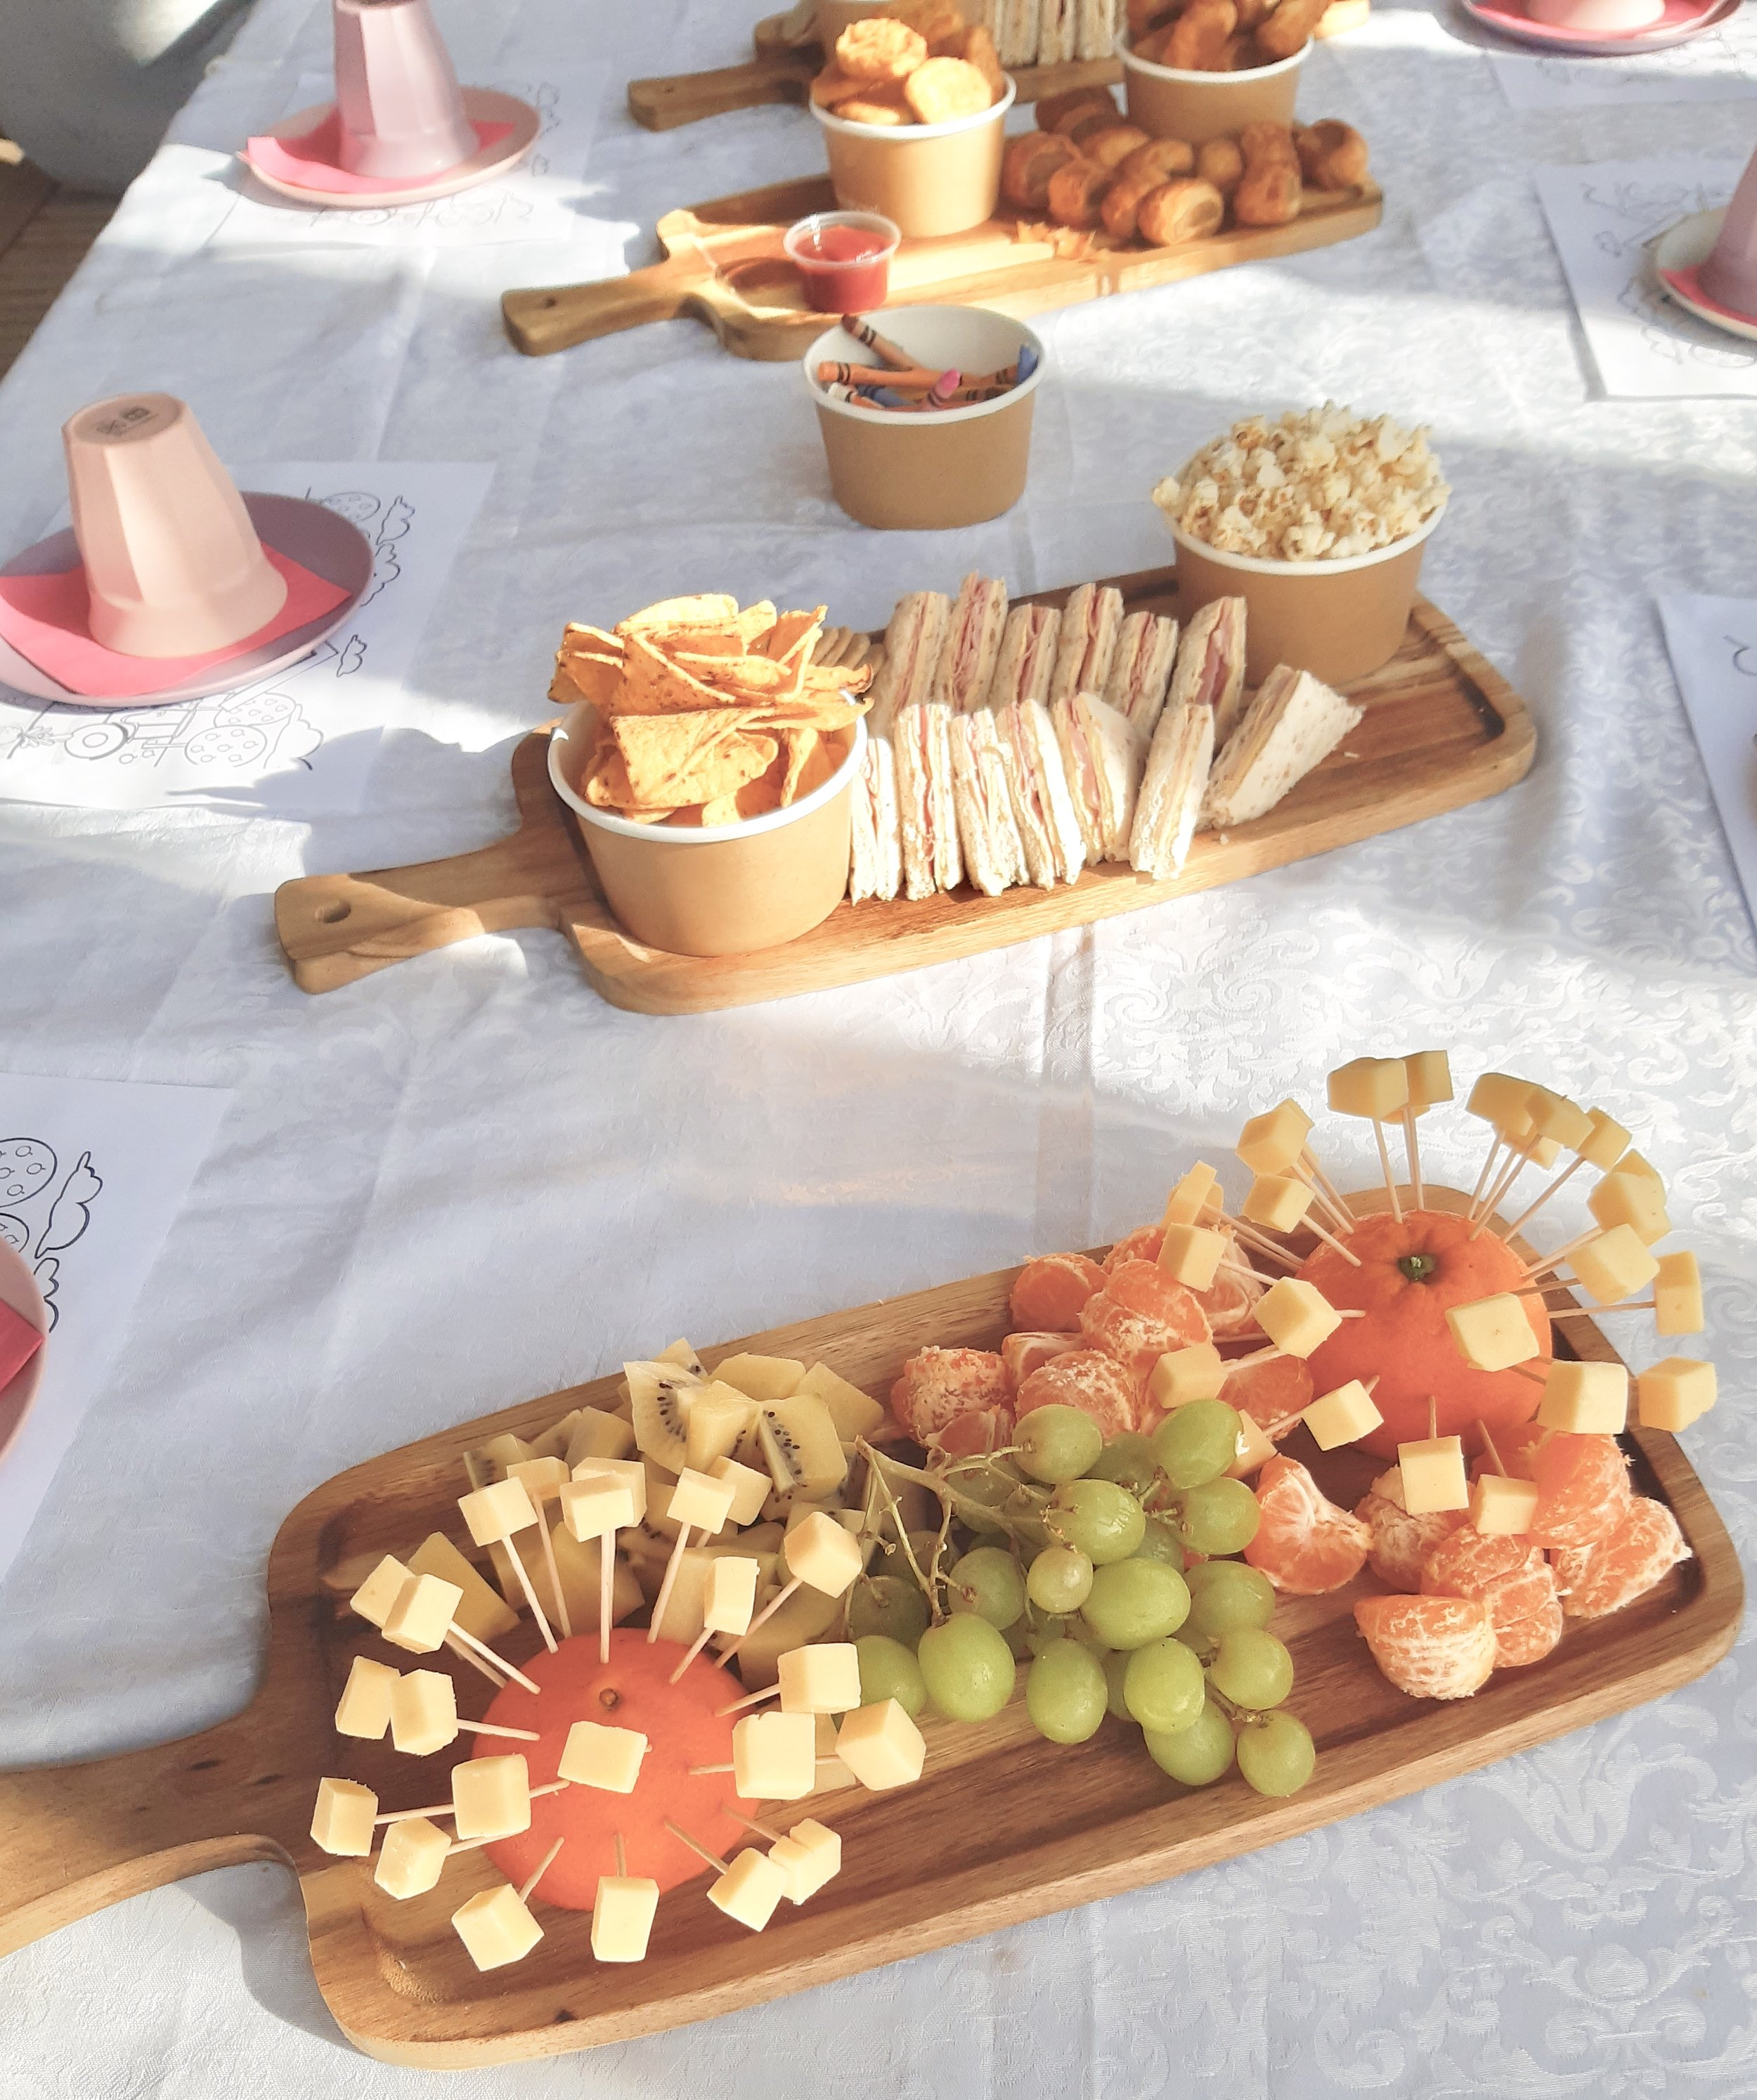 Example of children's platters. Please note these are subject to change seasonally.